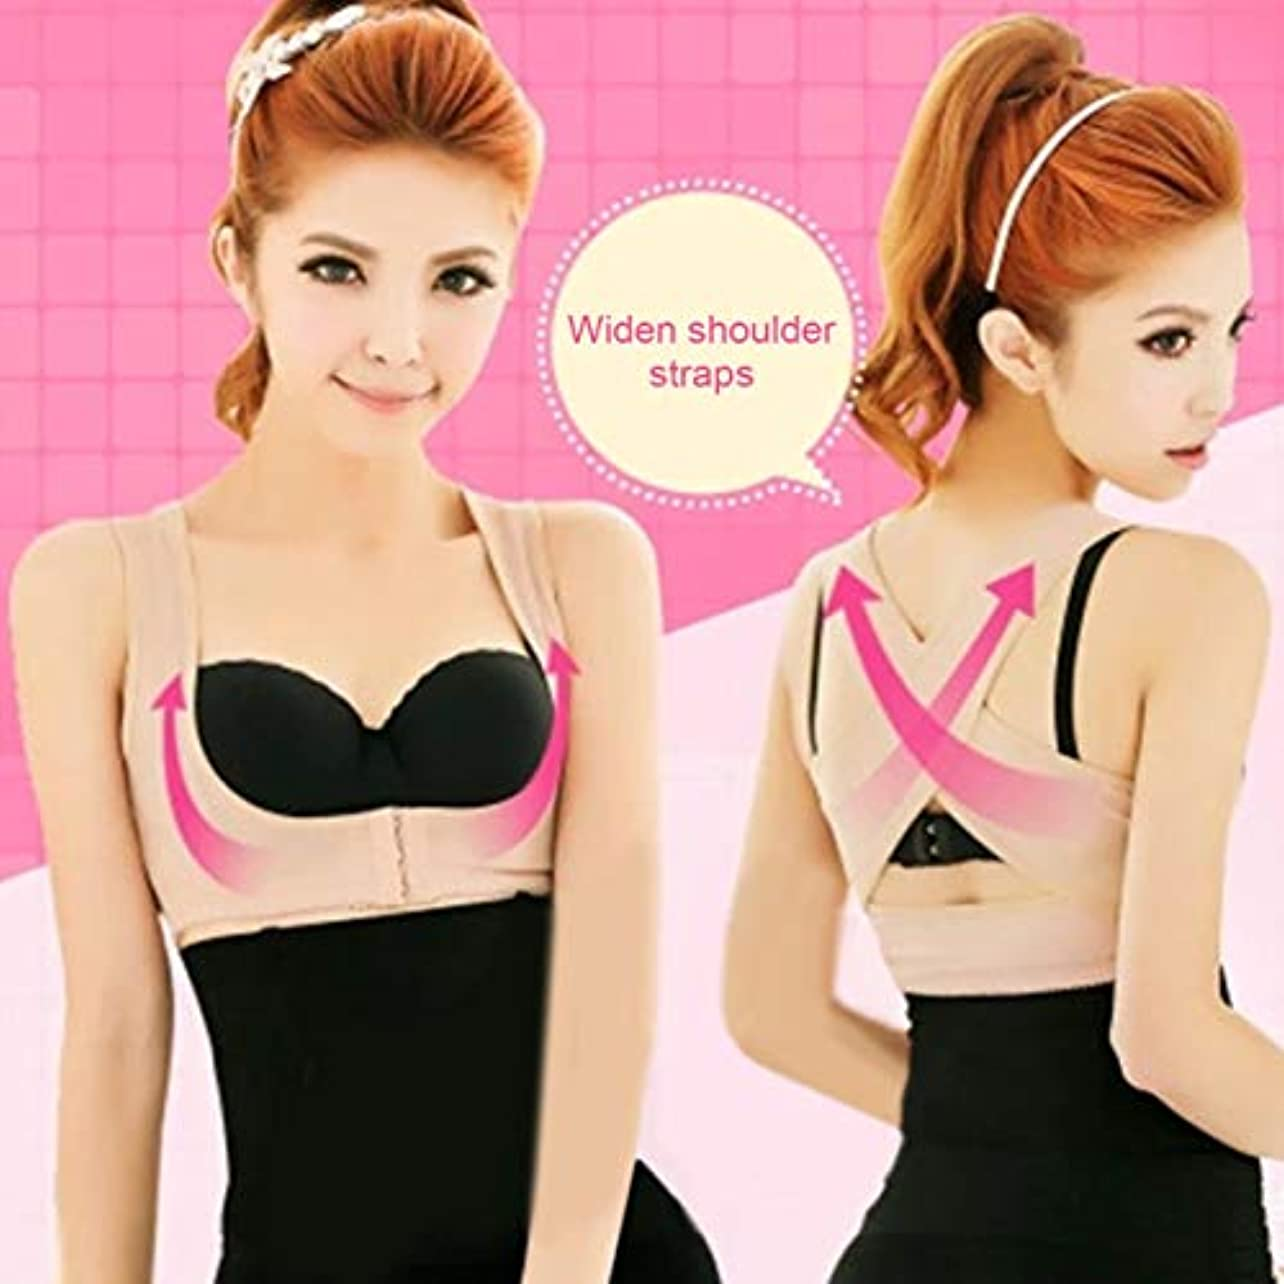 メンダシティマイル忘れるPosture Corrector Women Chest Brace Up Prevent Chest Sagging And Humpback Bra Cross Strap Vest Body Shaper Slimming...